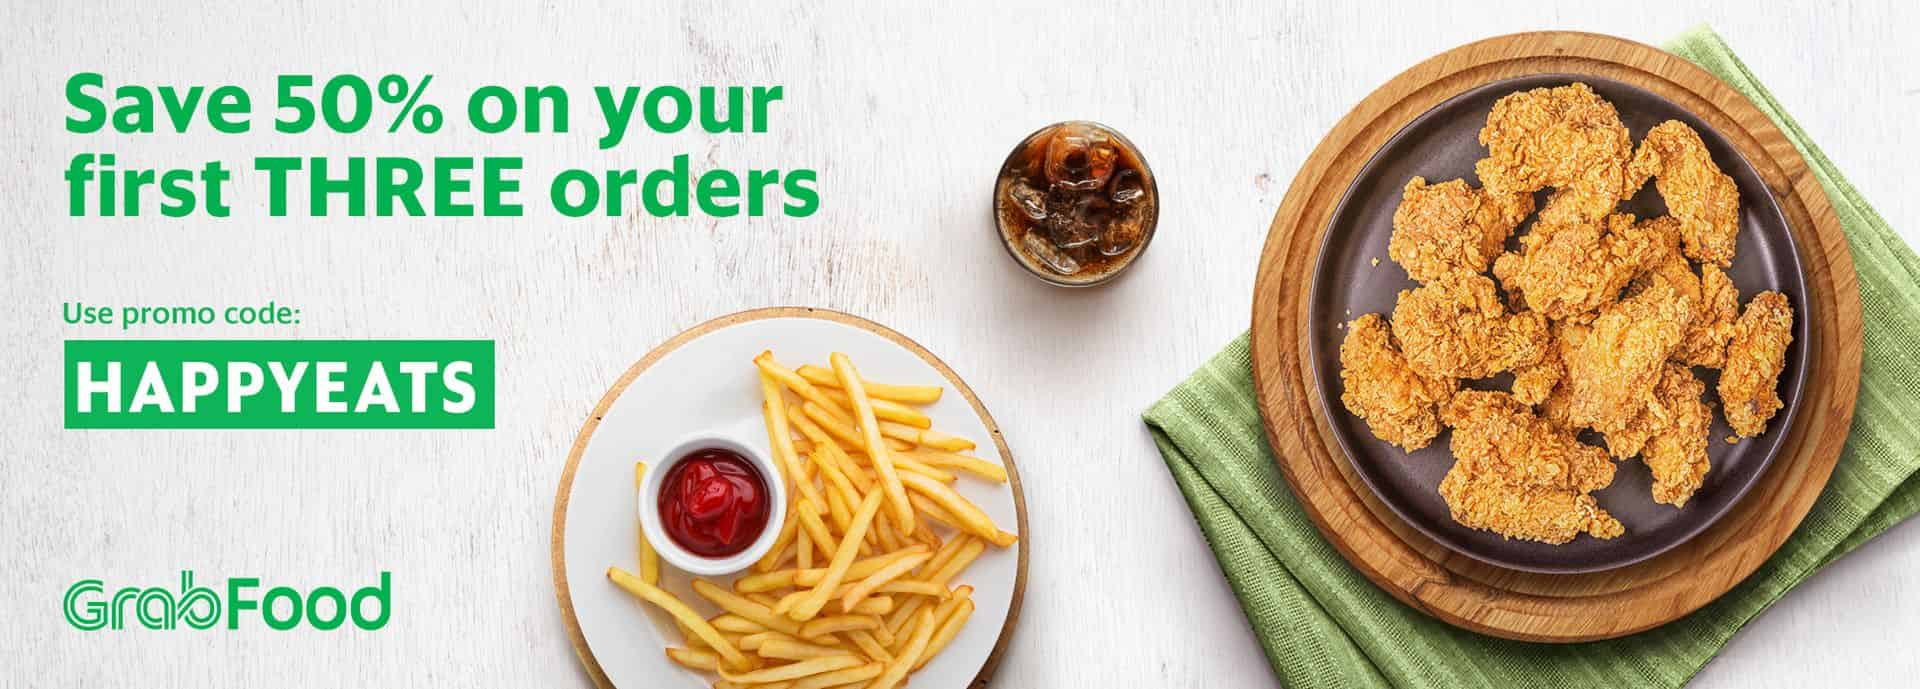 50% OFF your first 3 GrabFood orders!   Grab MY